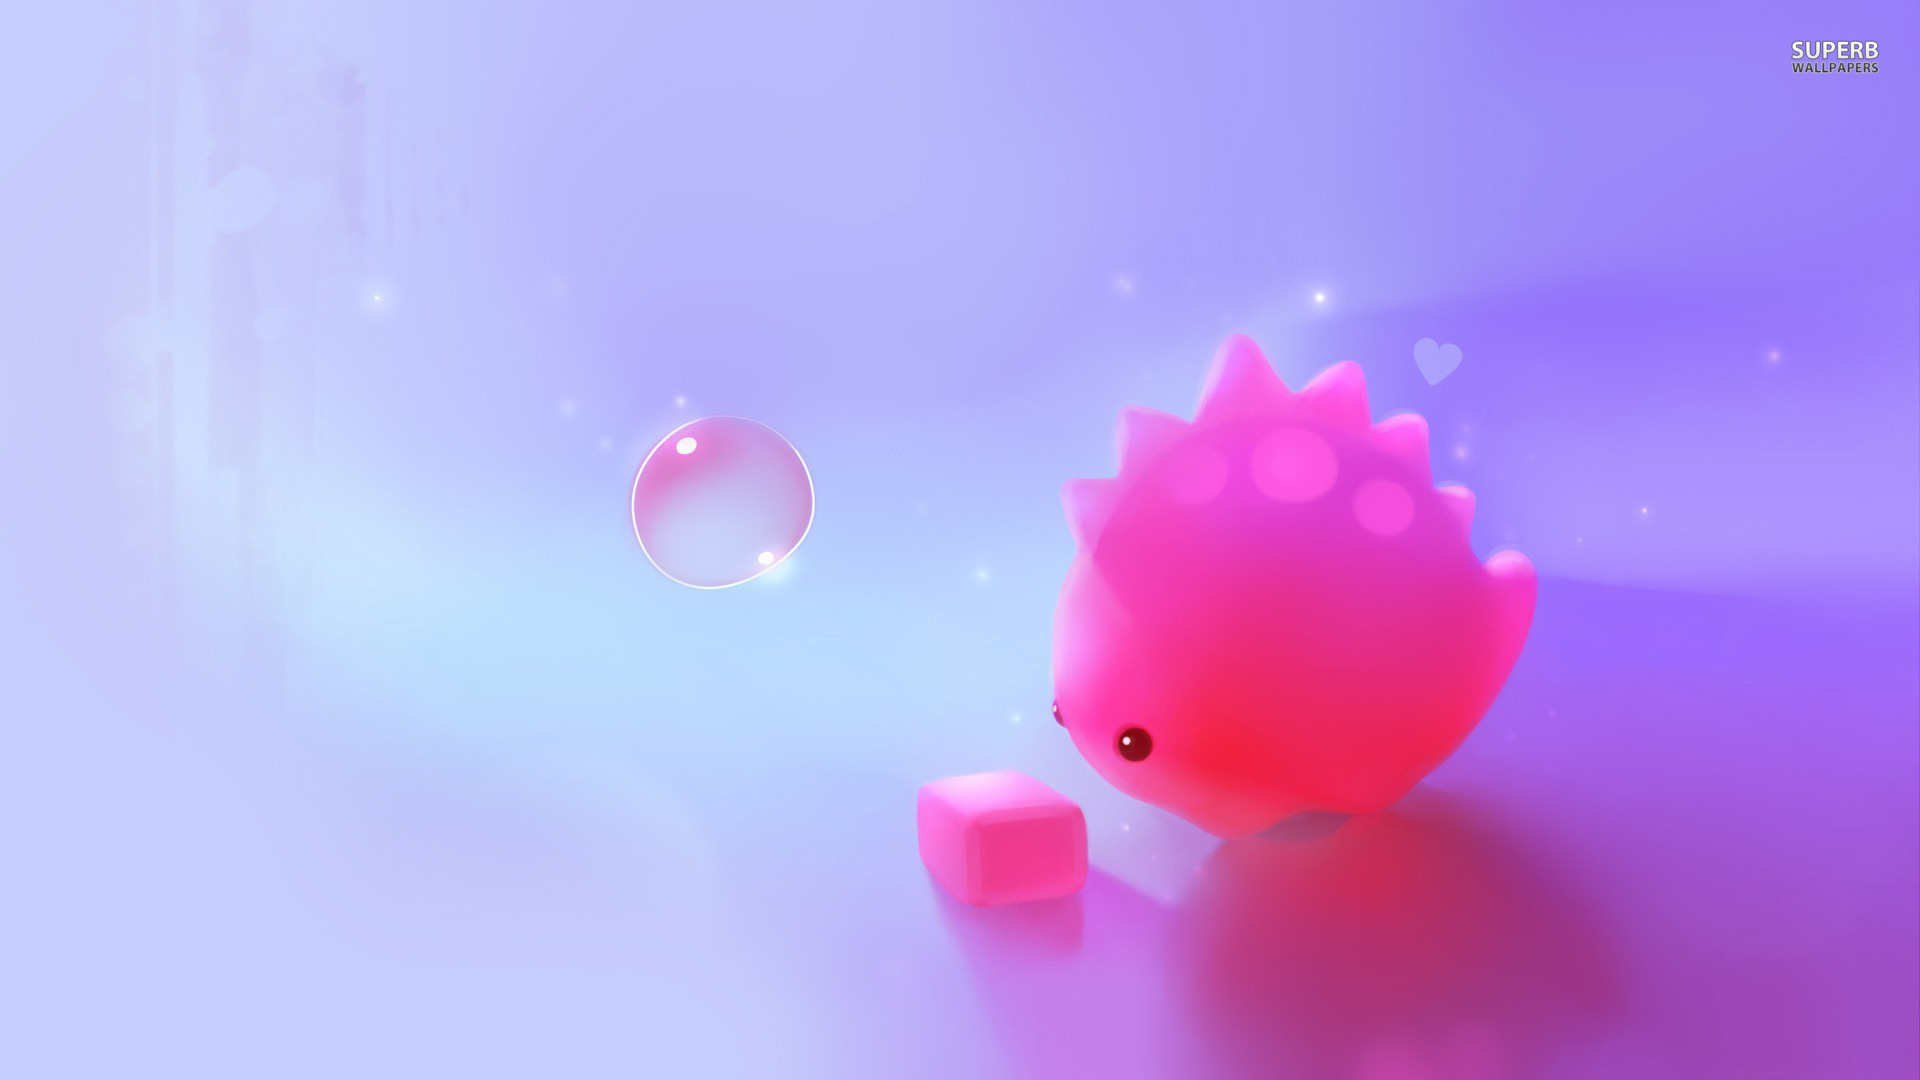 kawaii desktop wallpaper 1920x1080